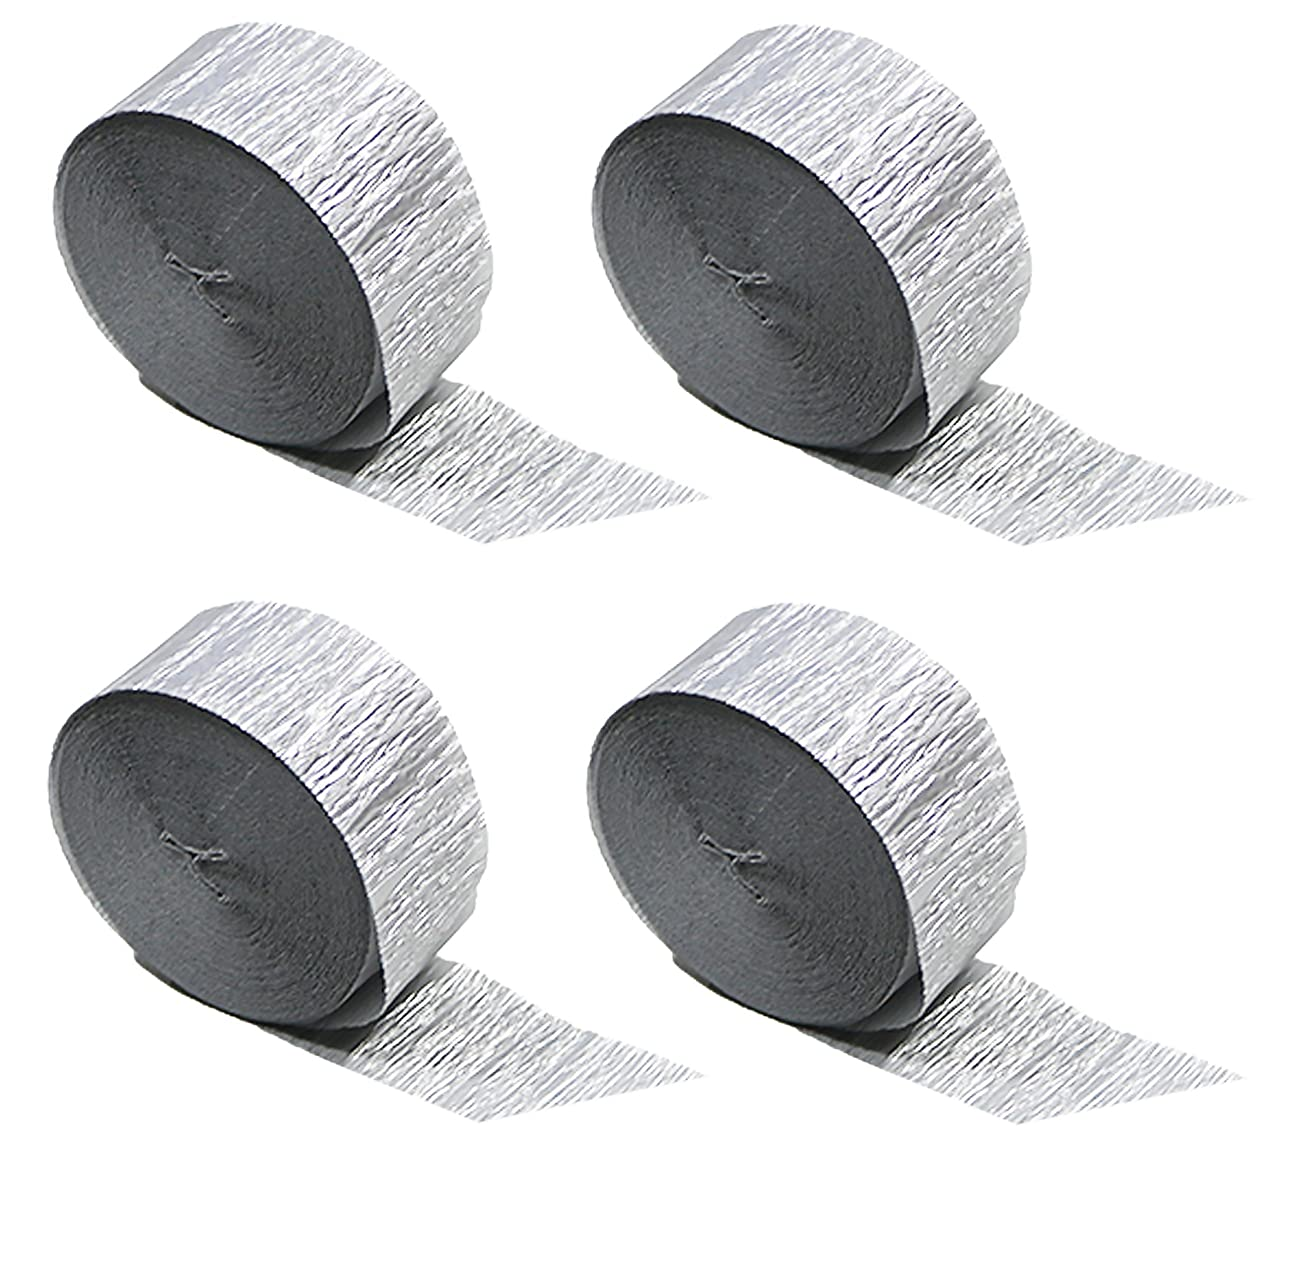 Silver Metallic Crepe Paper Streamers 4 Rolls, 290 Feet Total, Made in USA